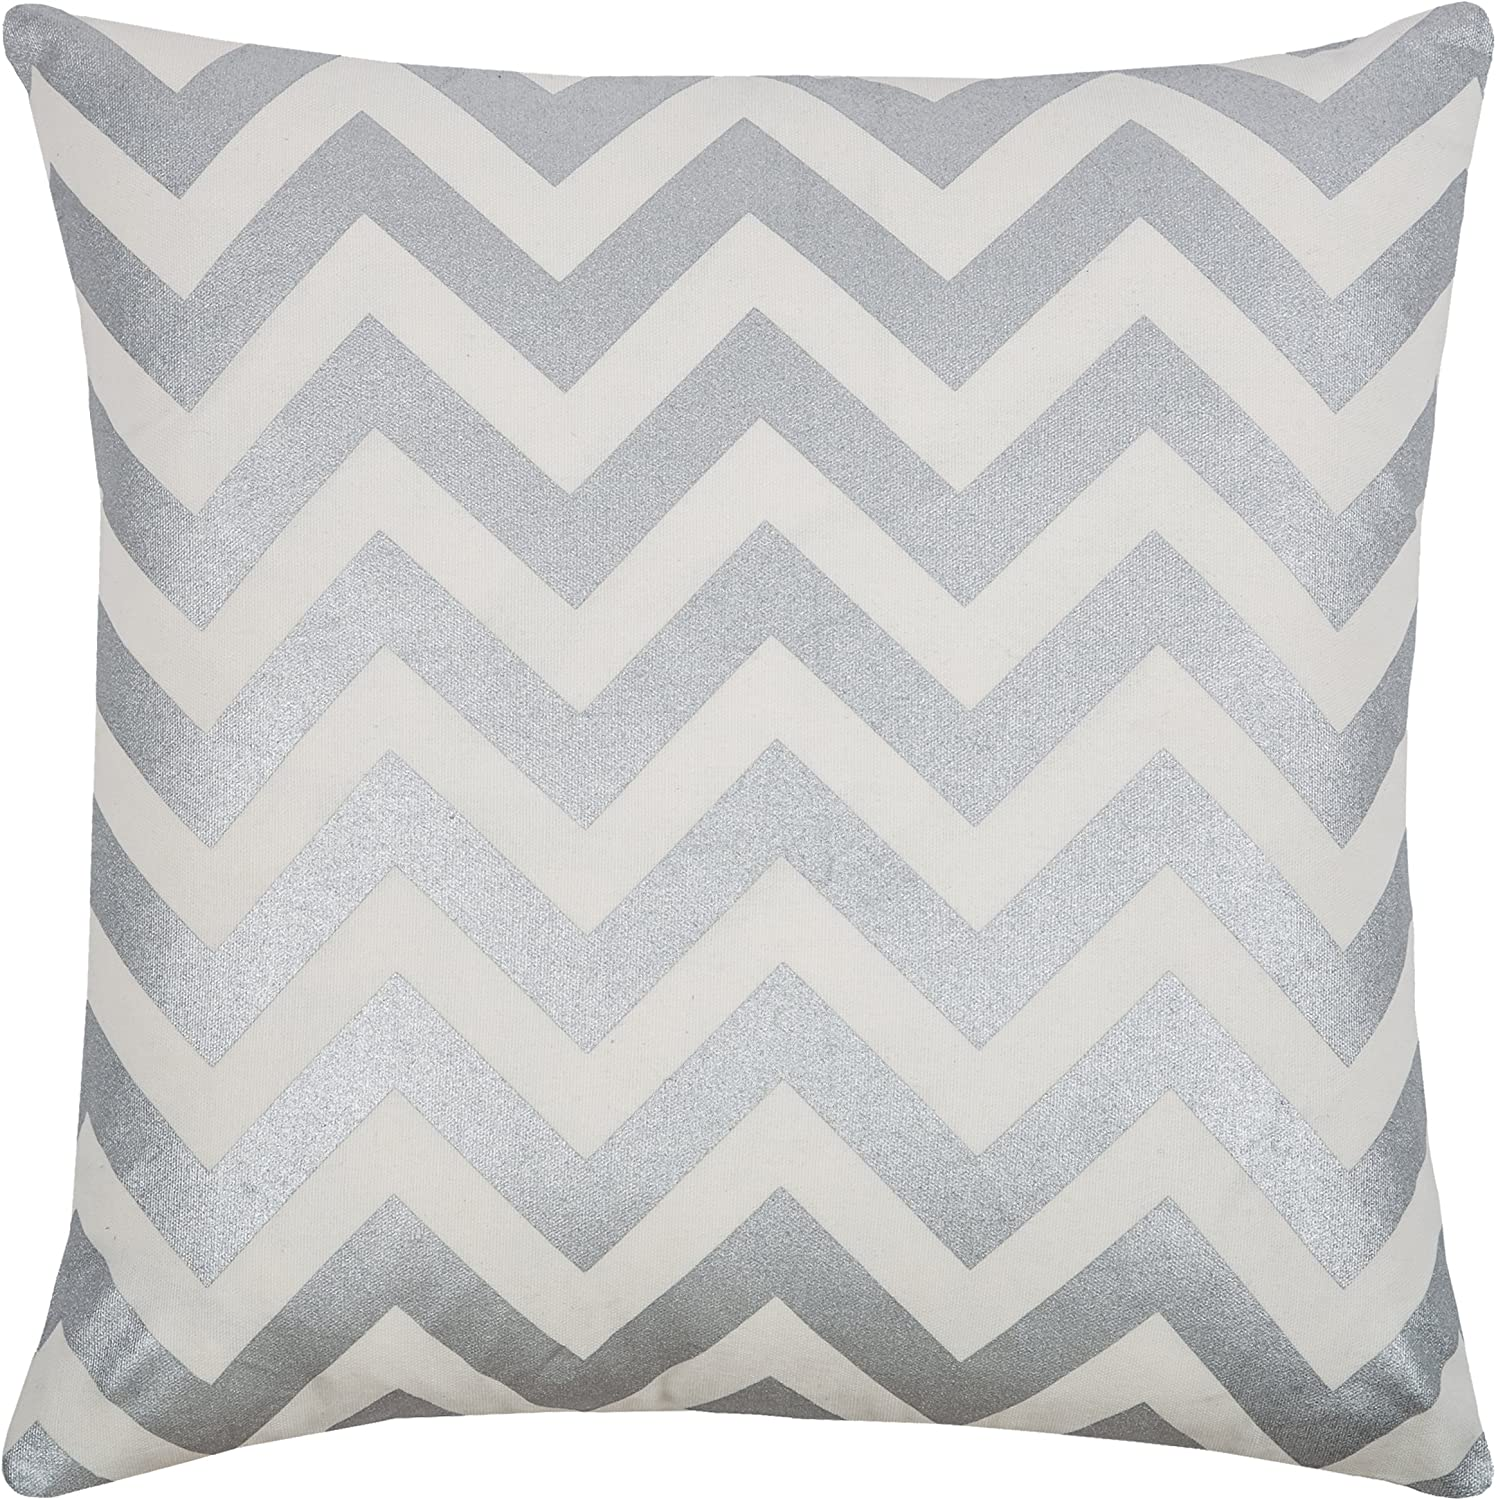 Ranking TOP6 Rizzy Home T08777 Decorative Pillow Metalli 18